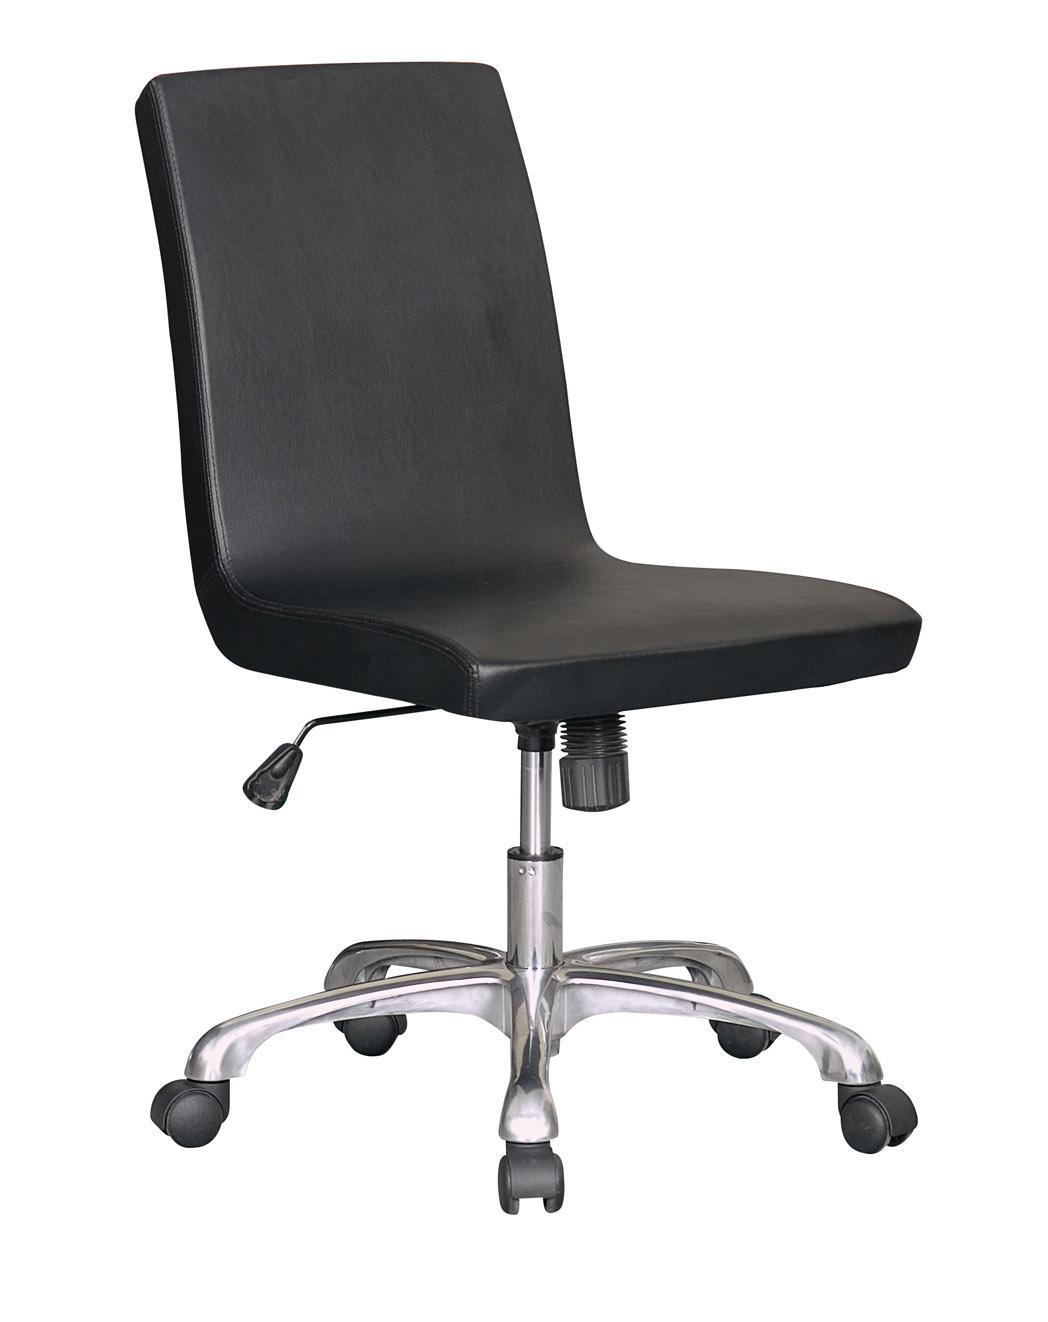 china office chair hl 5111 china office chair meeting chair. Black Bedroom Furniture Sets. Home Design Ideas